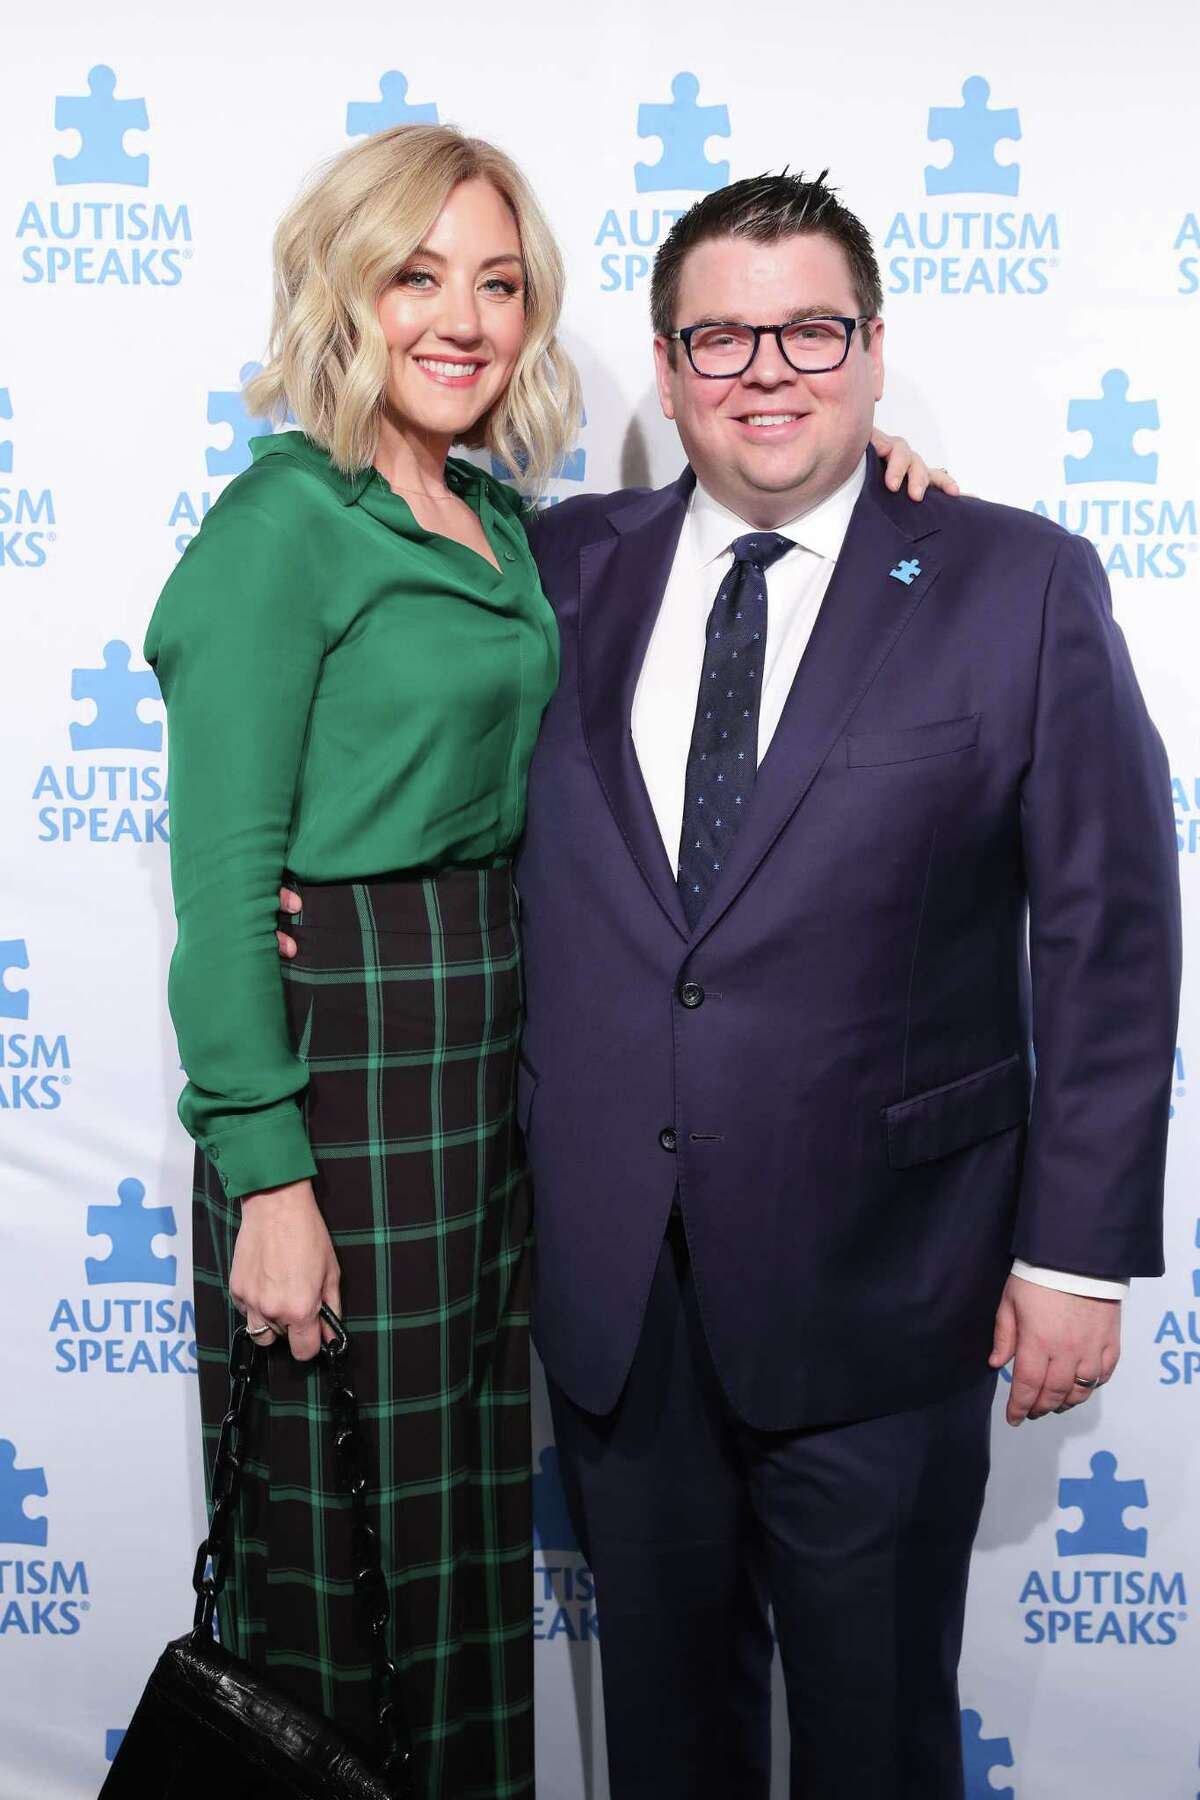 NEW YORK, NEW YORK - OCTOBER 15: Aidan Kehoe, CEO & Co-Founder, Skout Cybersecurity and wife, Tricia attend the 13th Annual Autism Speaks Celebrity Chef Gala at Cipriani Wall Street on October 15, 2019 in New York City. (Photo by Cindy Ord/Getty Images for Autism Speaks )